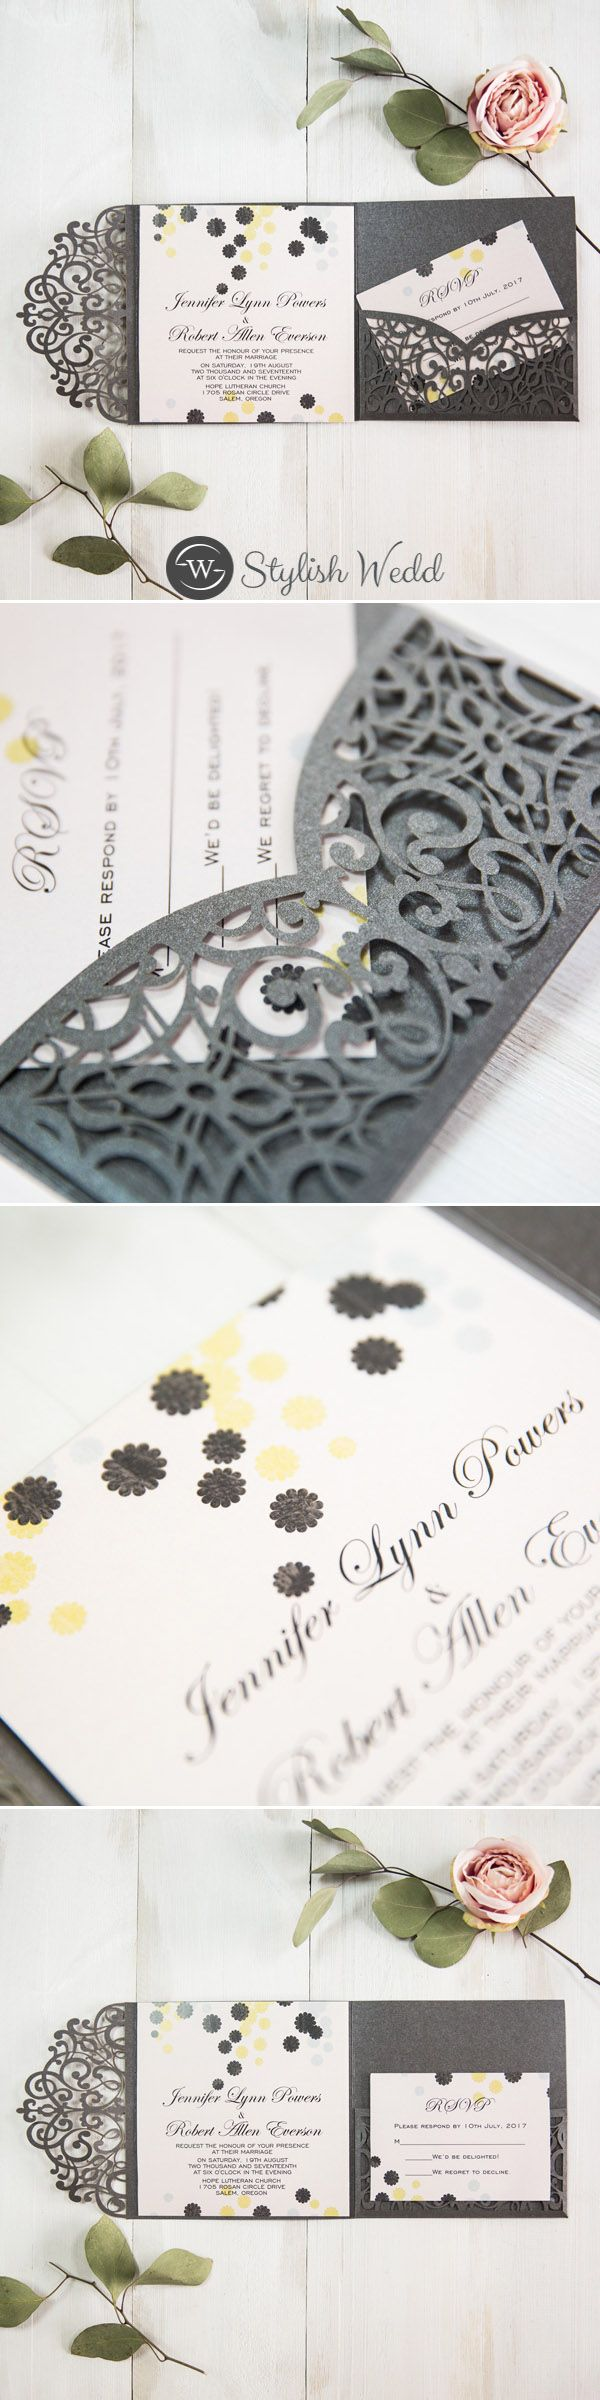 Black Laser Cut Pocket with Scalloped Circle  Patterned Invitation SWWS060